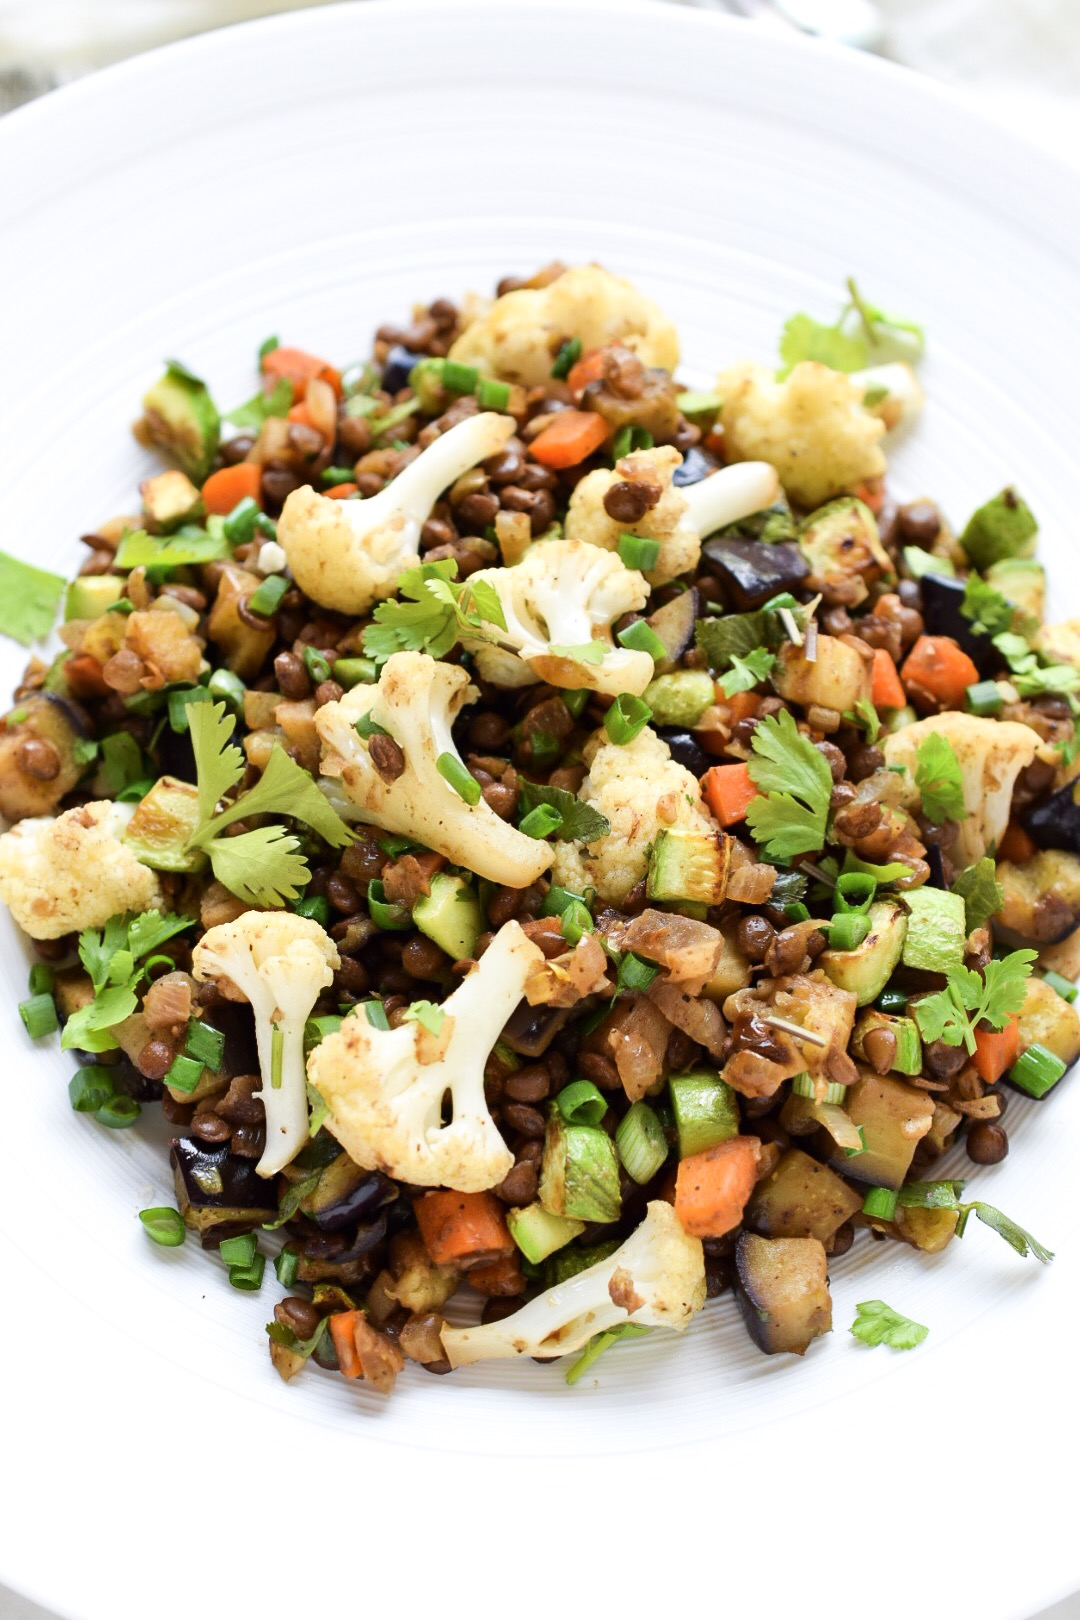 Dinner 4 - Spiced Lentils with Mix Veggies